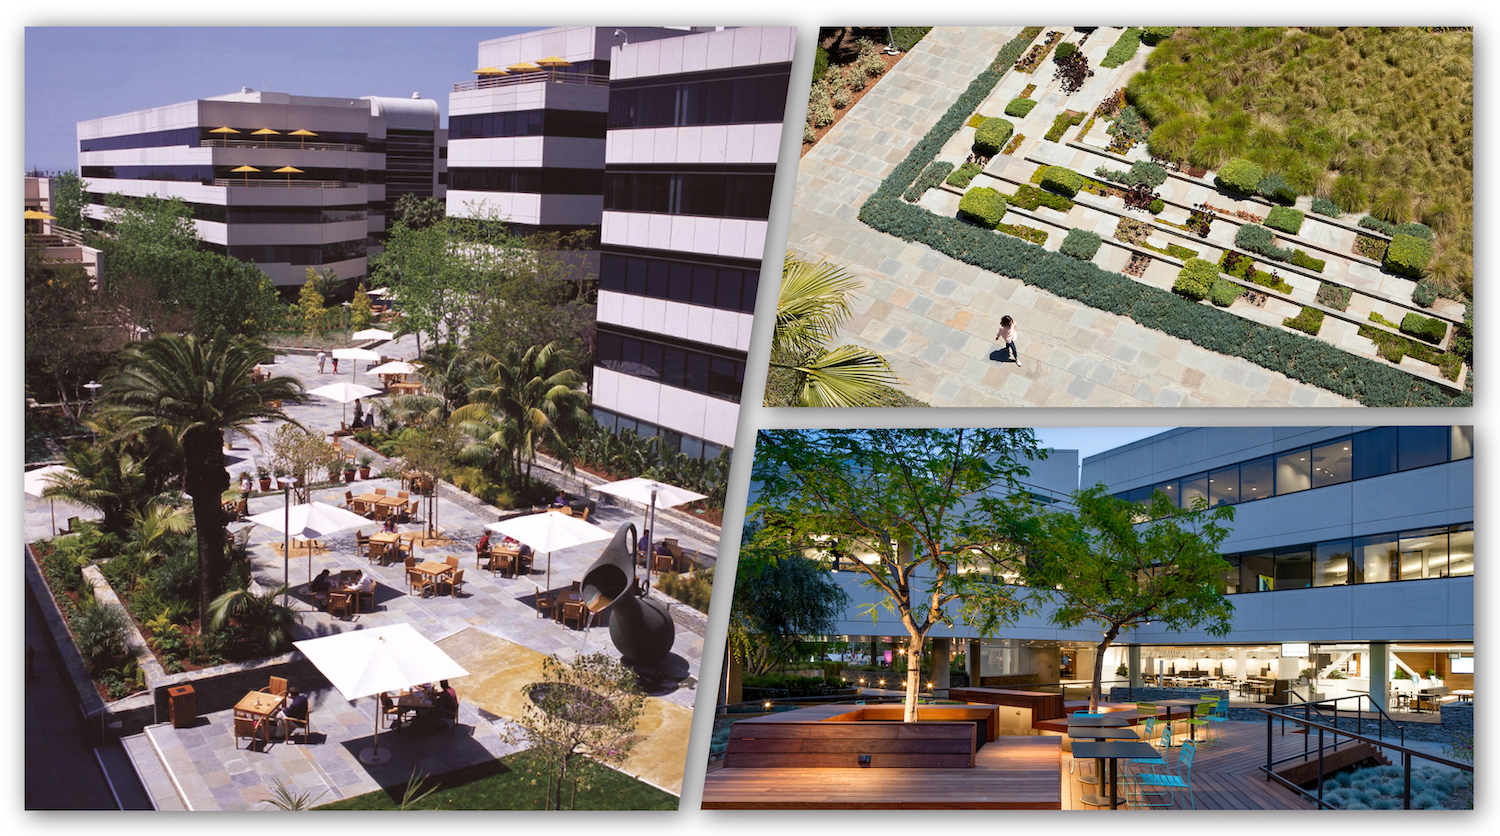 LA campus collage